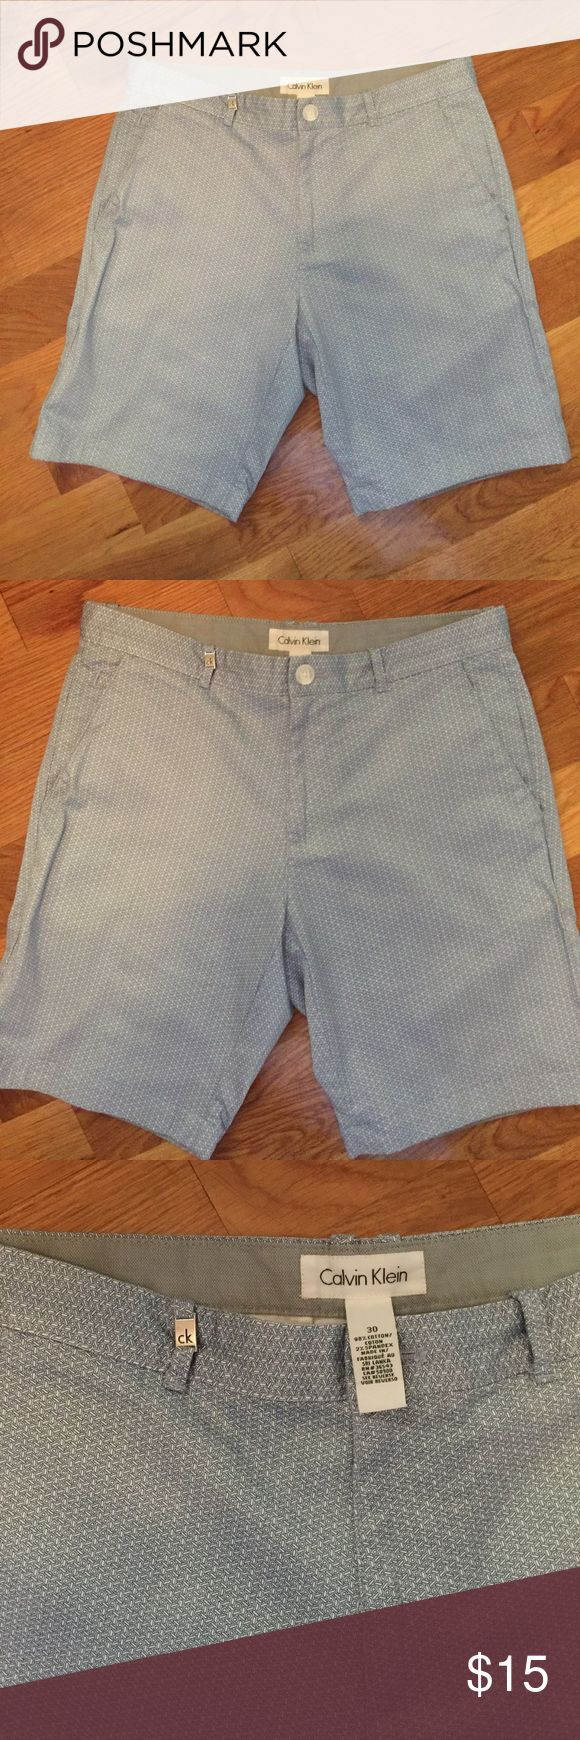 Calvin Kevin shorts Blue and white shorts by designer Calvin Klein means there are designer details like emblem on belt loop extra stitching detail on pockets...  two front deep pockets and two rear pockets all deep enough for phone😀98% cotton makes these cool and machine washable. Size 30 Calvin Klein Shorts